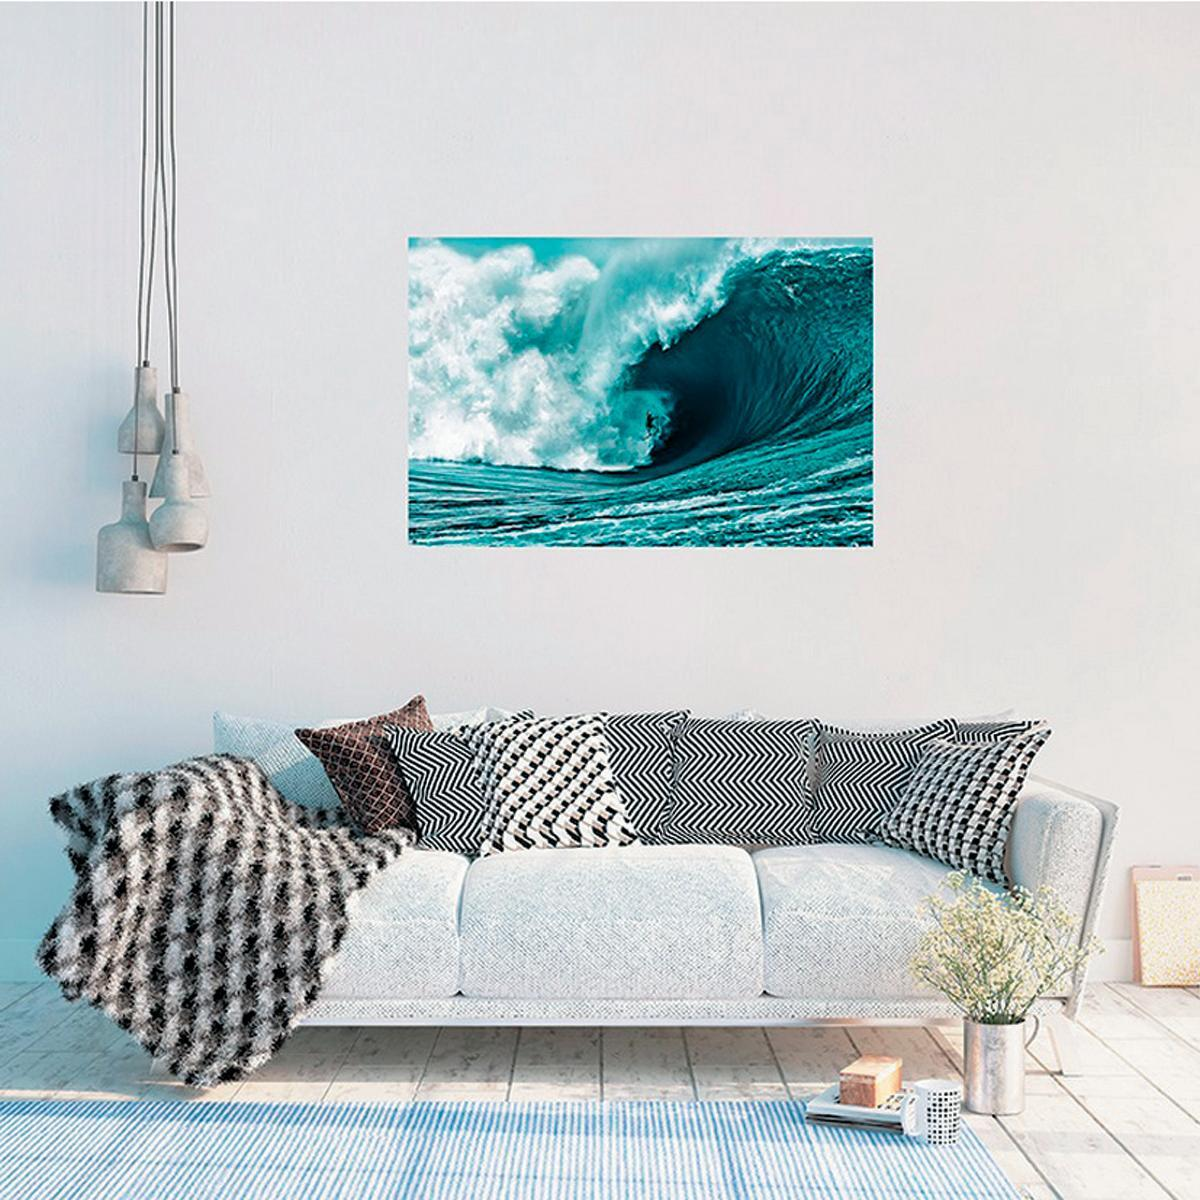 Poster The big wave 91.5x61 cm - 2